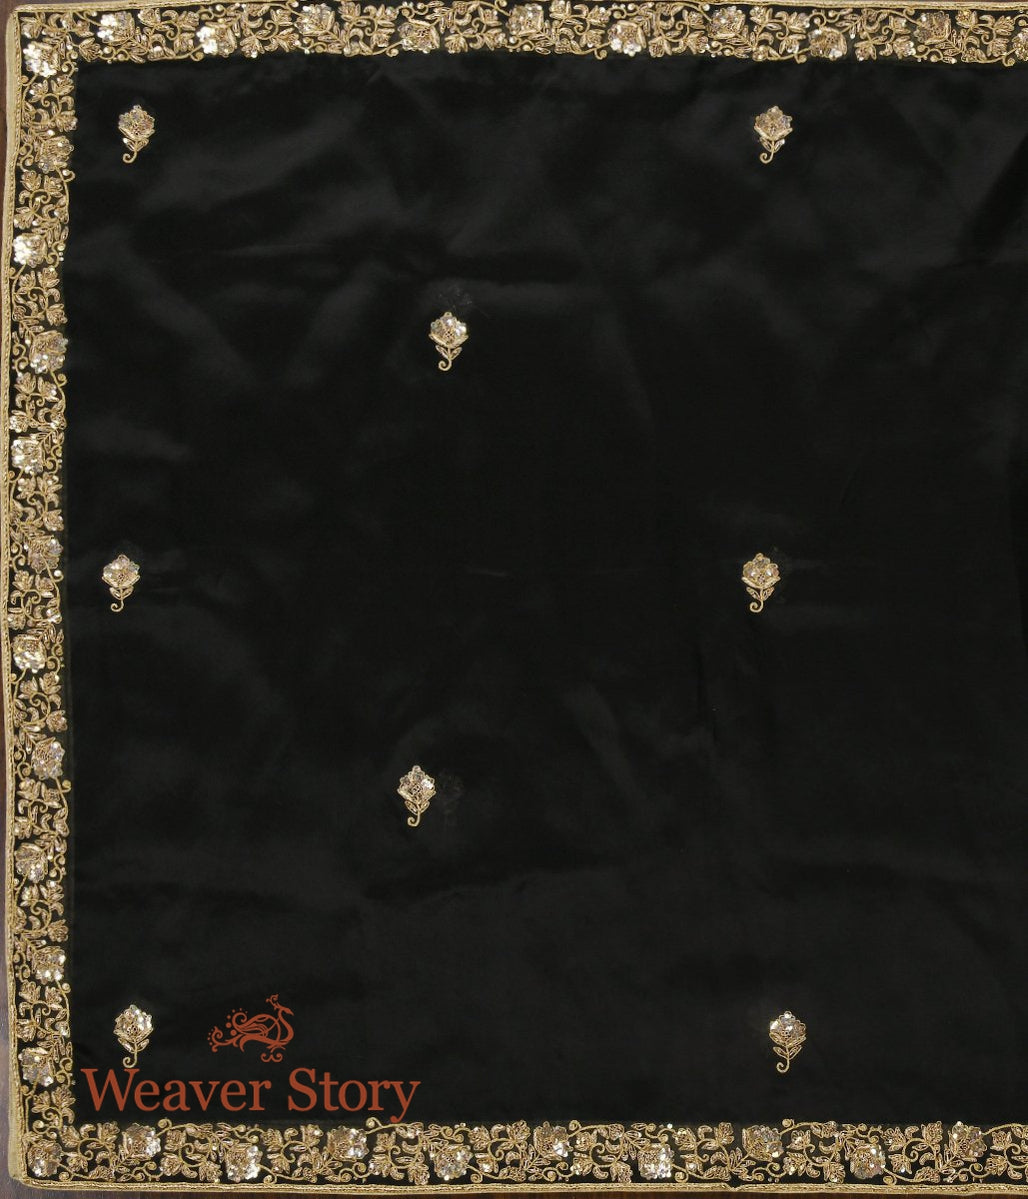 Black Zardozi Dupatta with Floral Border and Booti